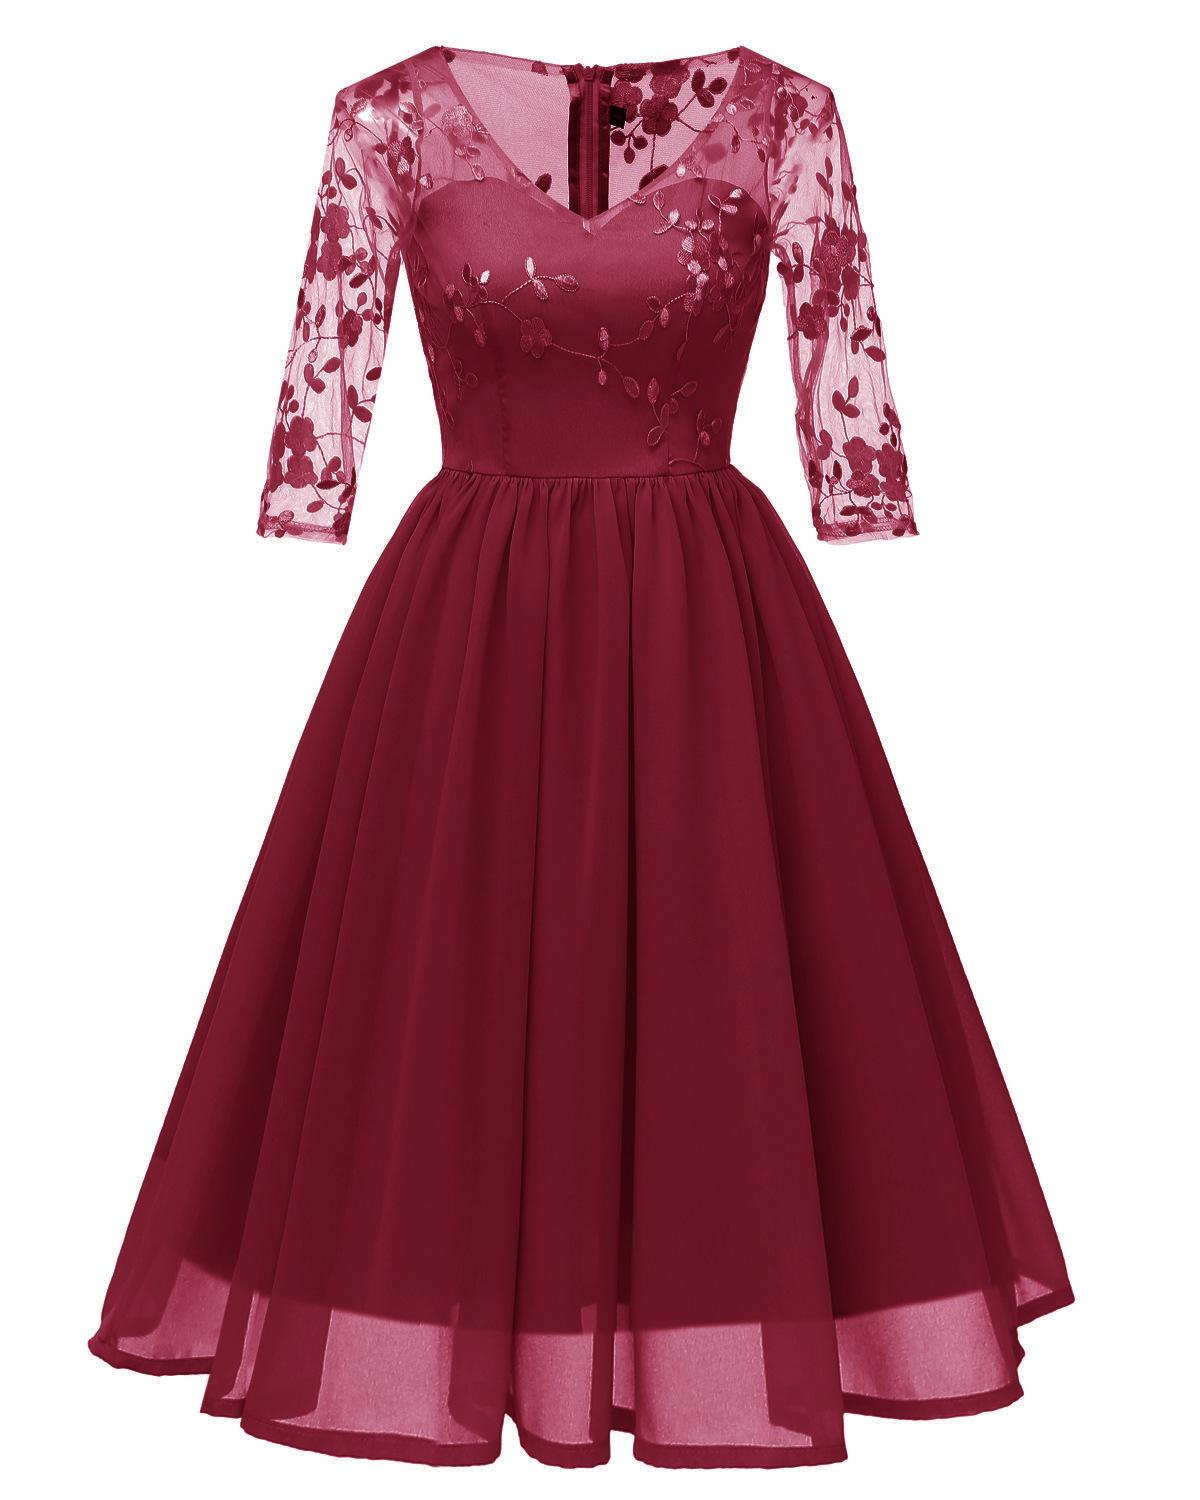 V-neck Long Sleeve Burgundy Embroidery   Cocktail     Dresses   Robe Chiffon Elegant Party 2019 Short Vestidos Homecoming   Dress